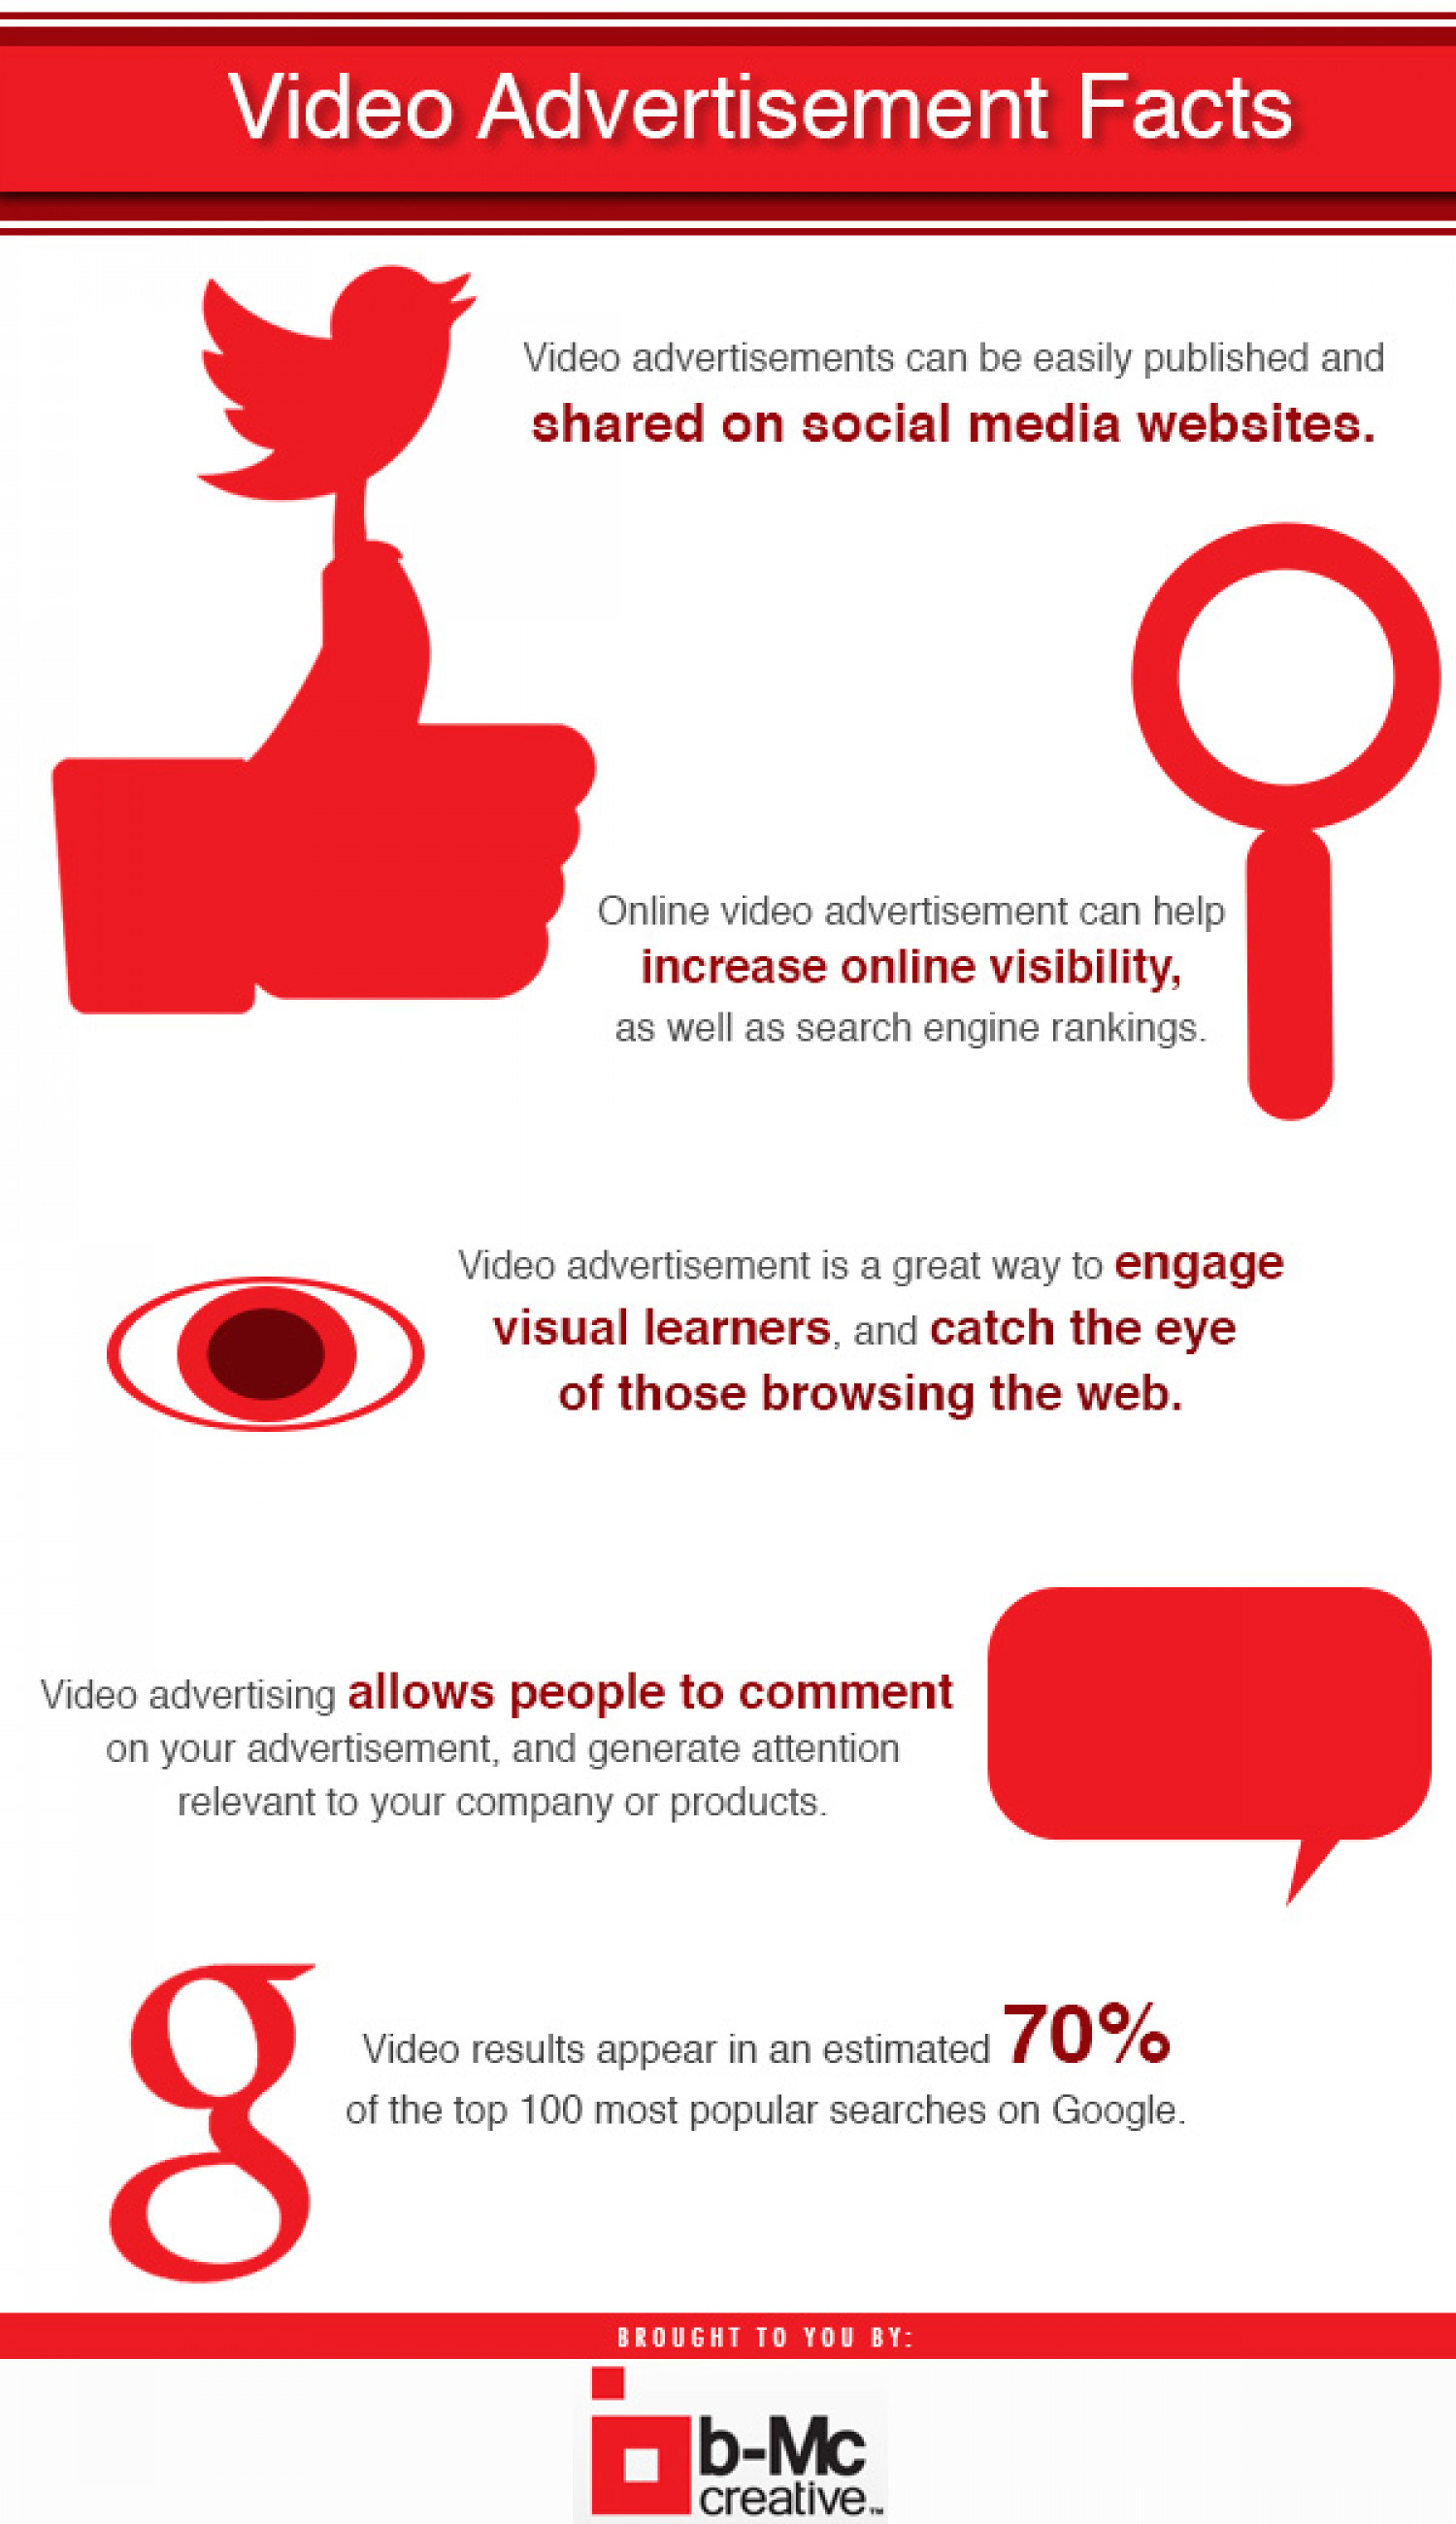 Video Advertisement Facts Infographic